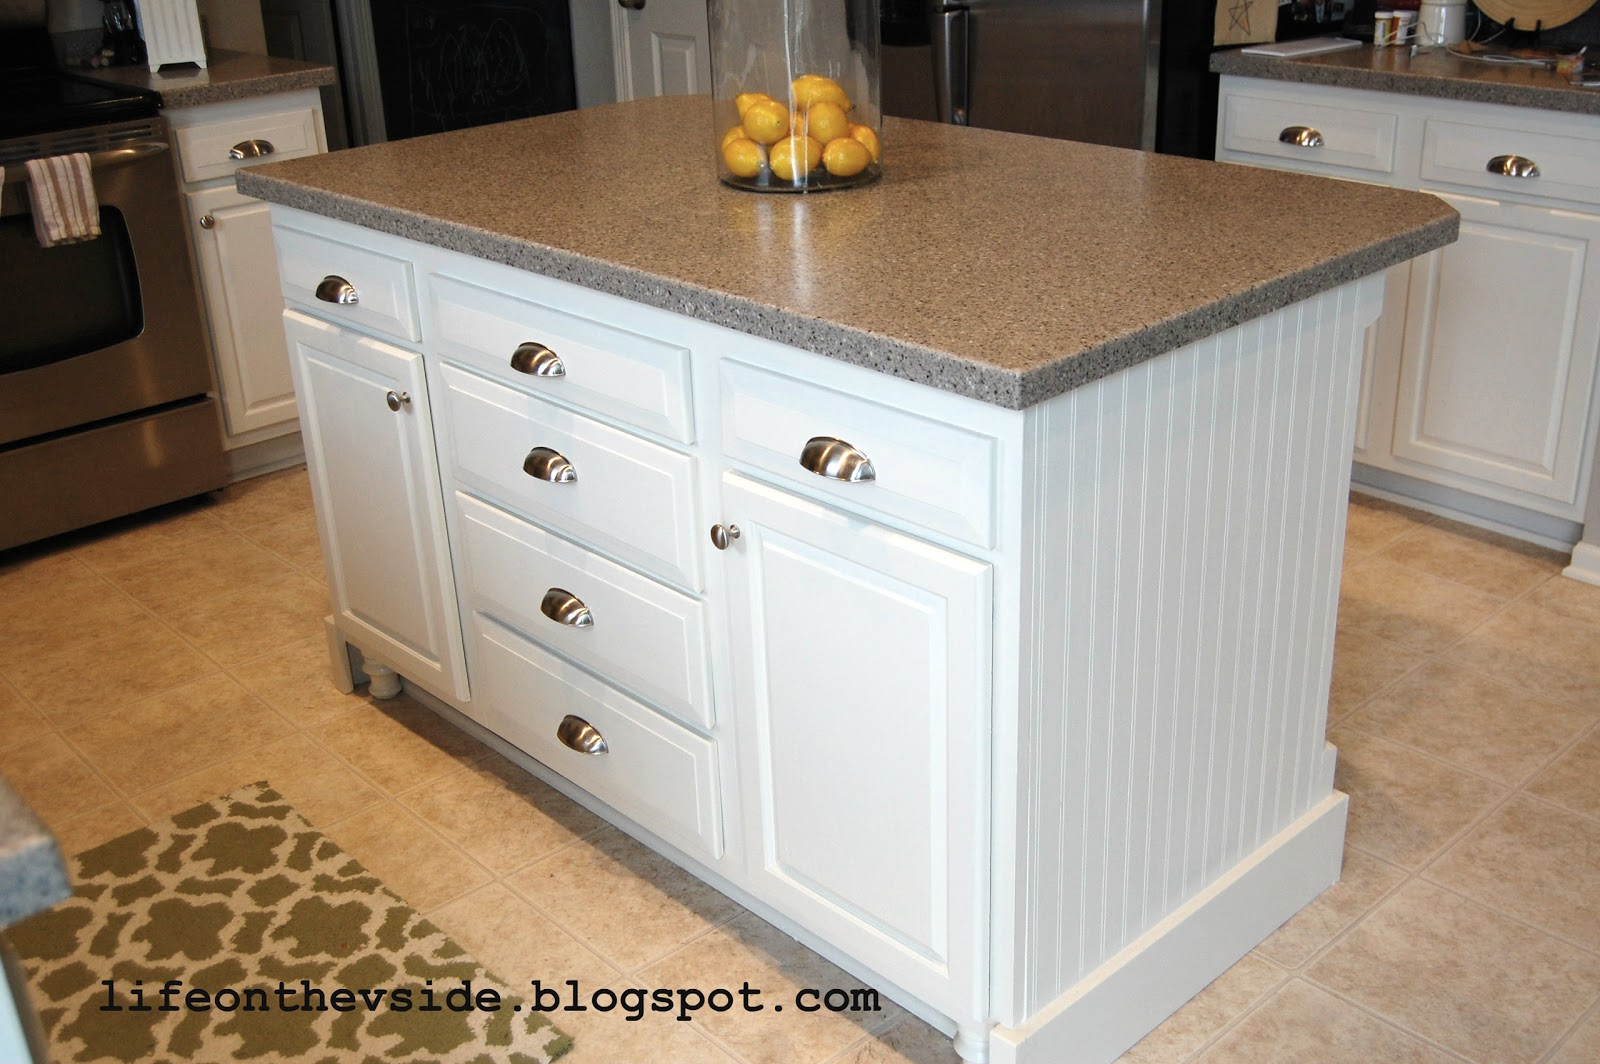 On the v side diy kitchen island update solutioingenieria Image collections